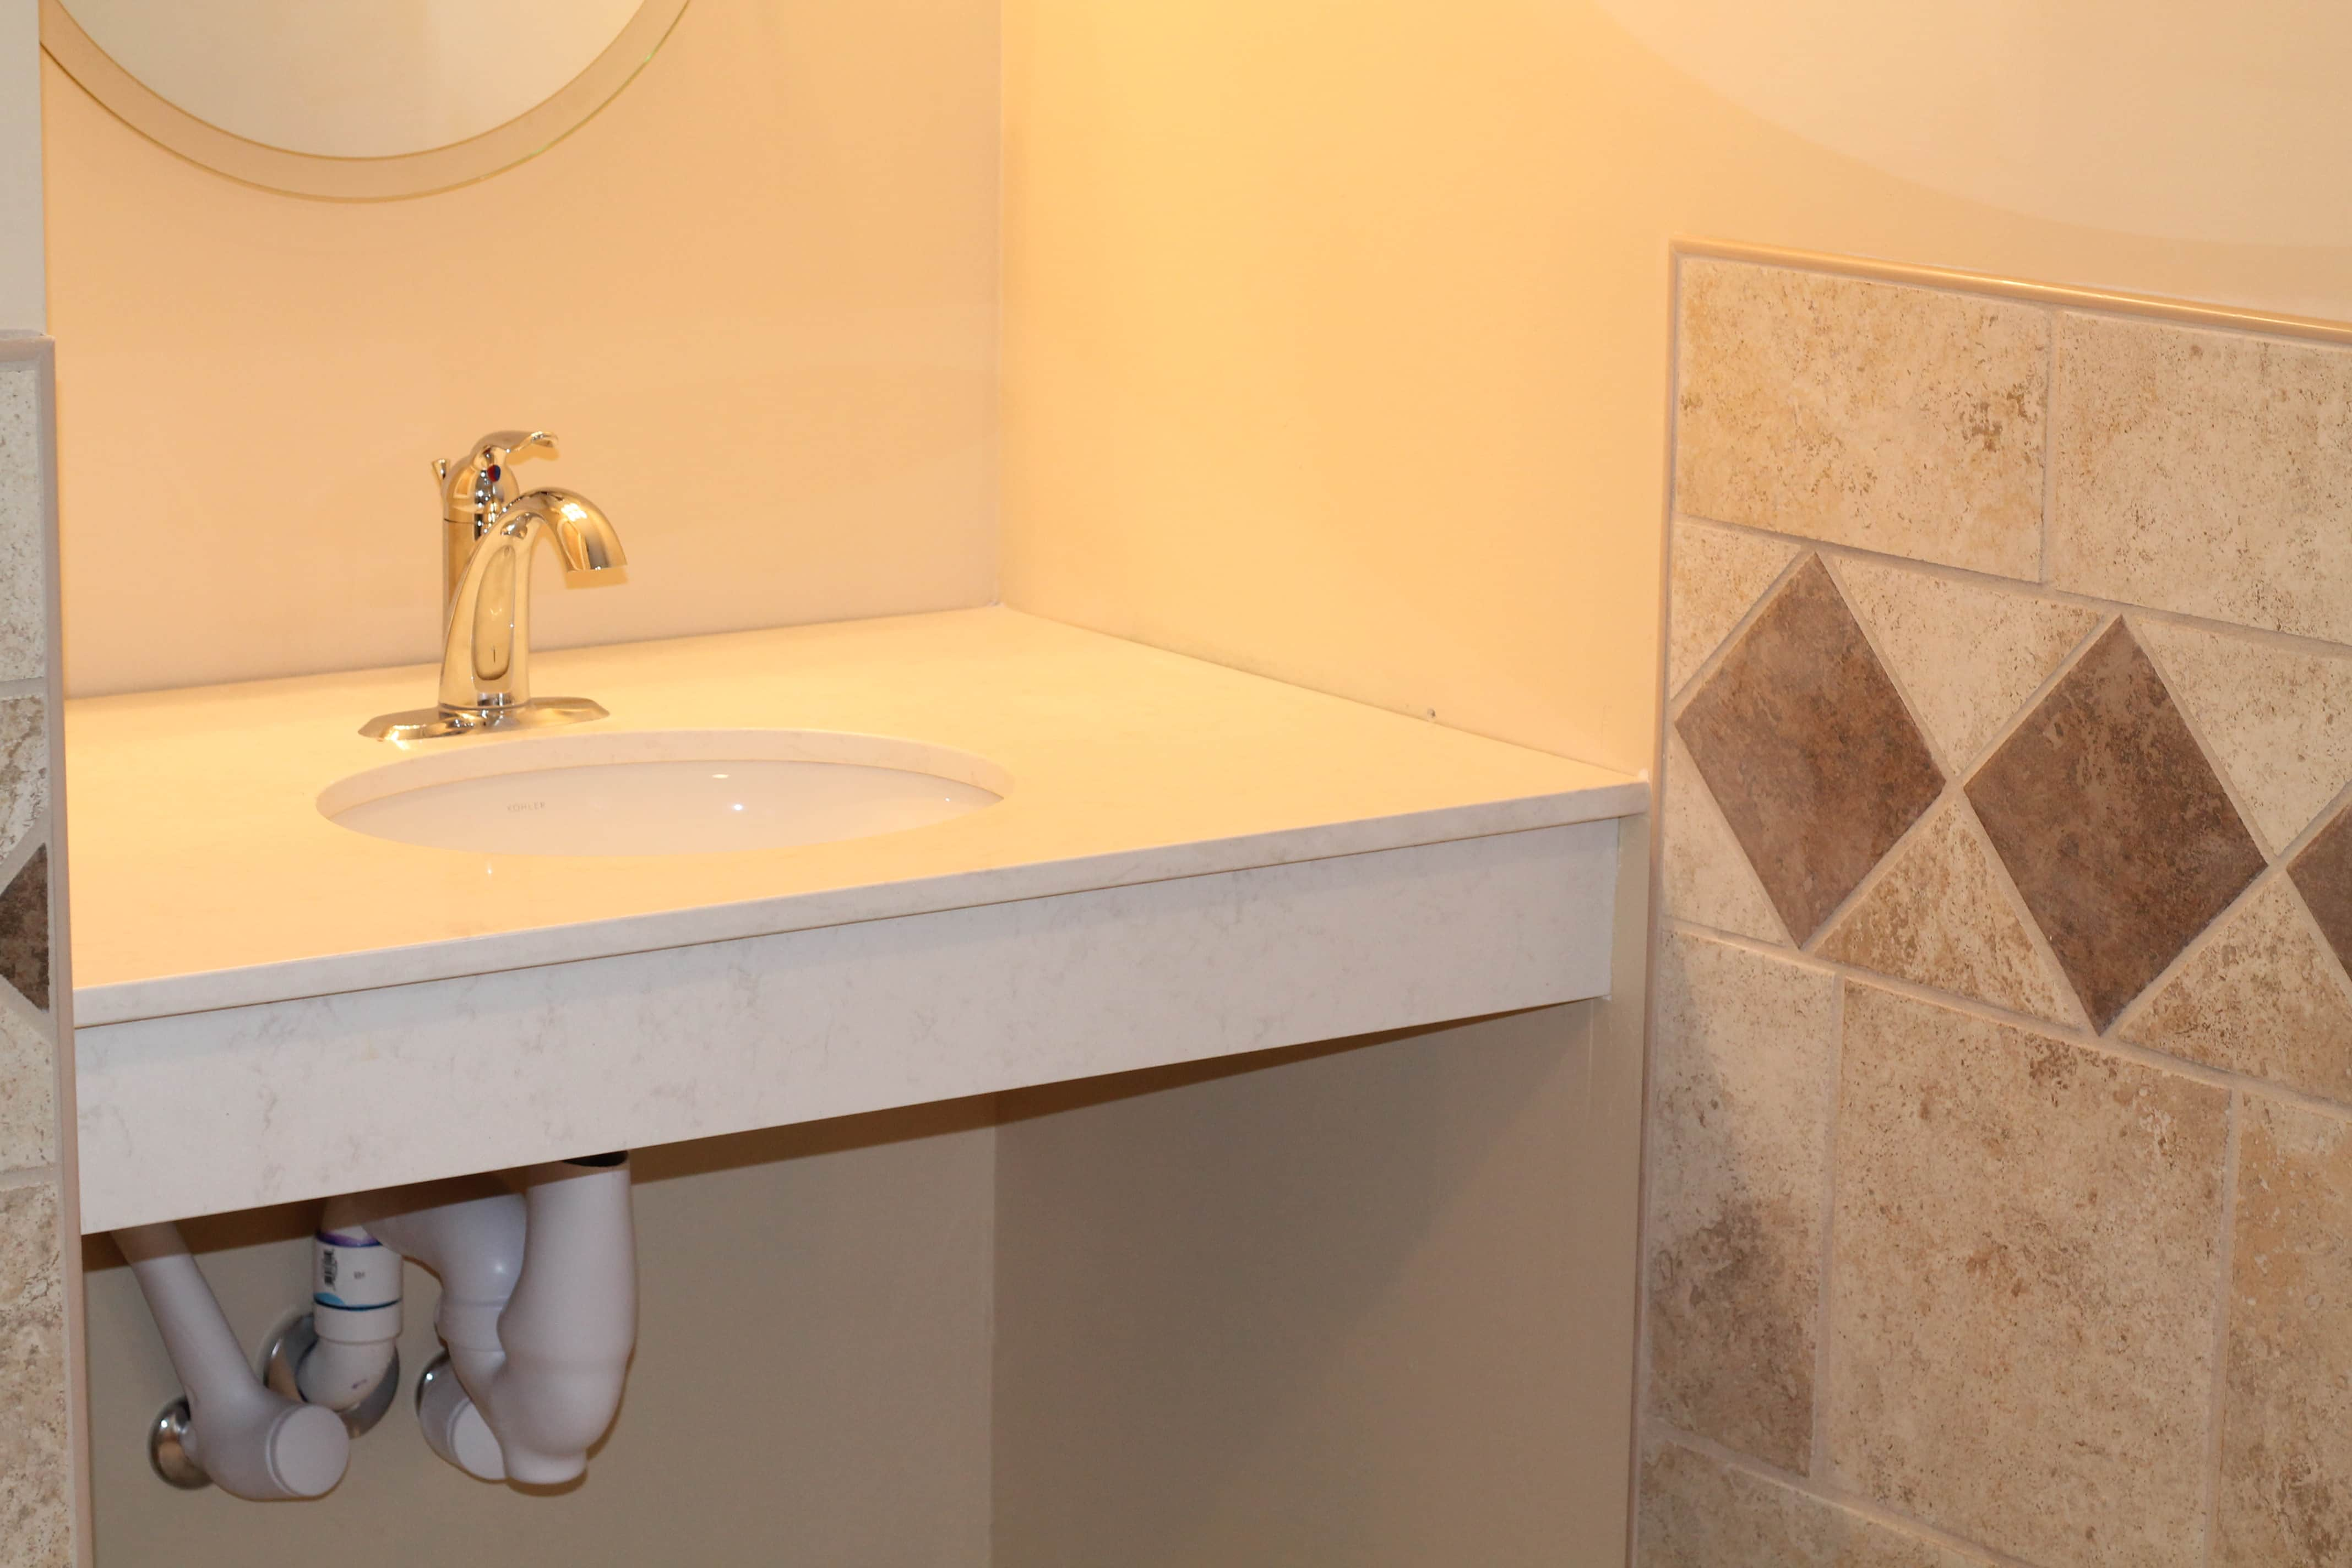 Bathroom Renovations For Safety Accessibility Access Mobility - Bathroom renovations for seniors